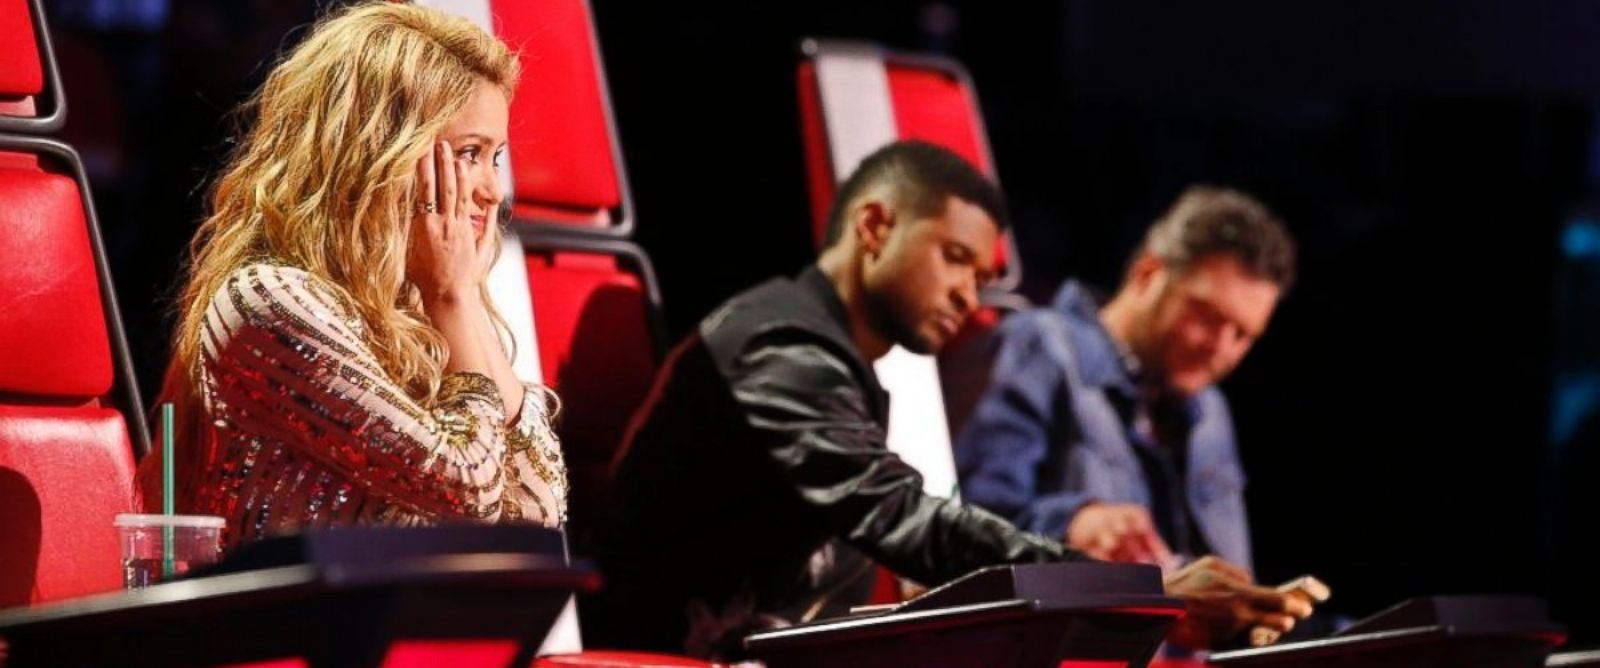 Shakira, Usher, Blake Shelton are seen on The Voice, April 22, 2014.